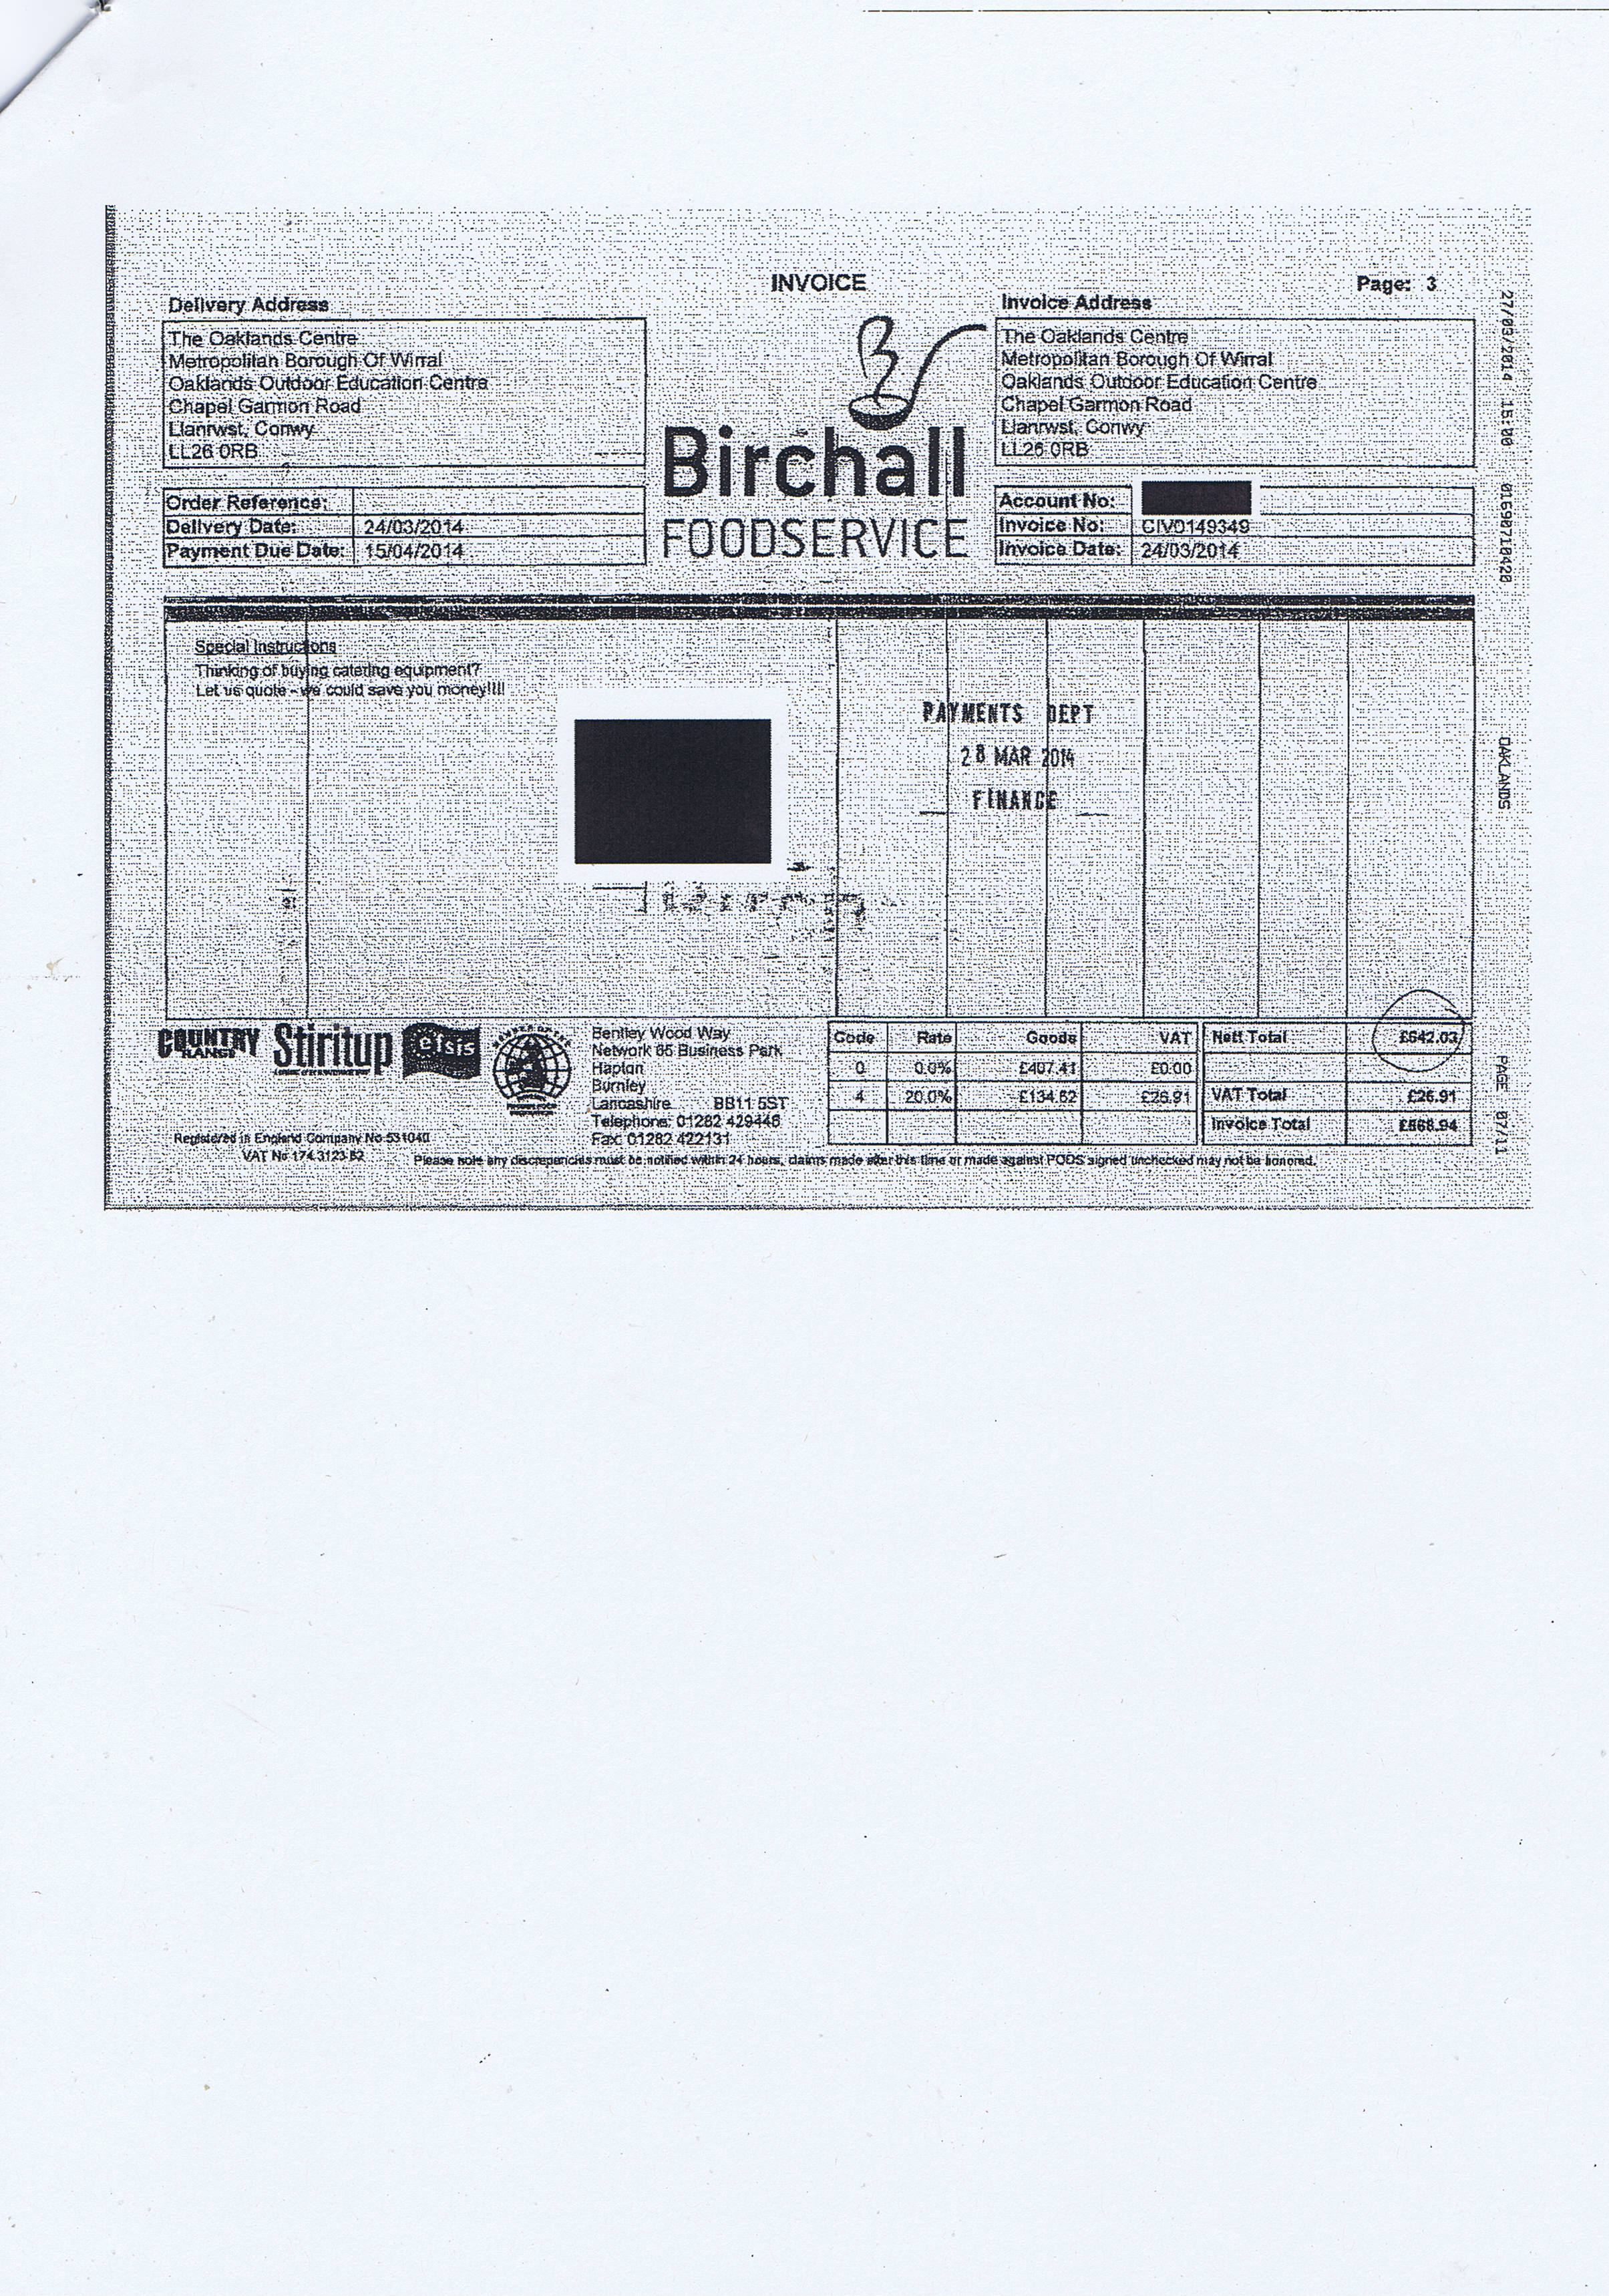 Wirral Council invoice 75 Birchall Foodservice £568.94 page 3 of 3